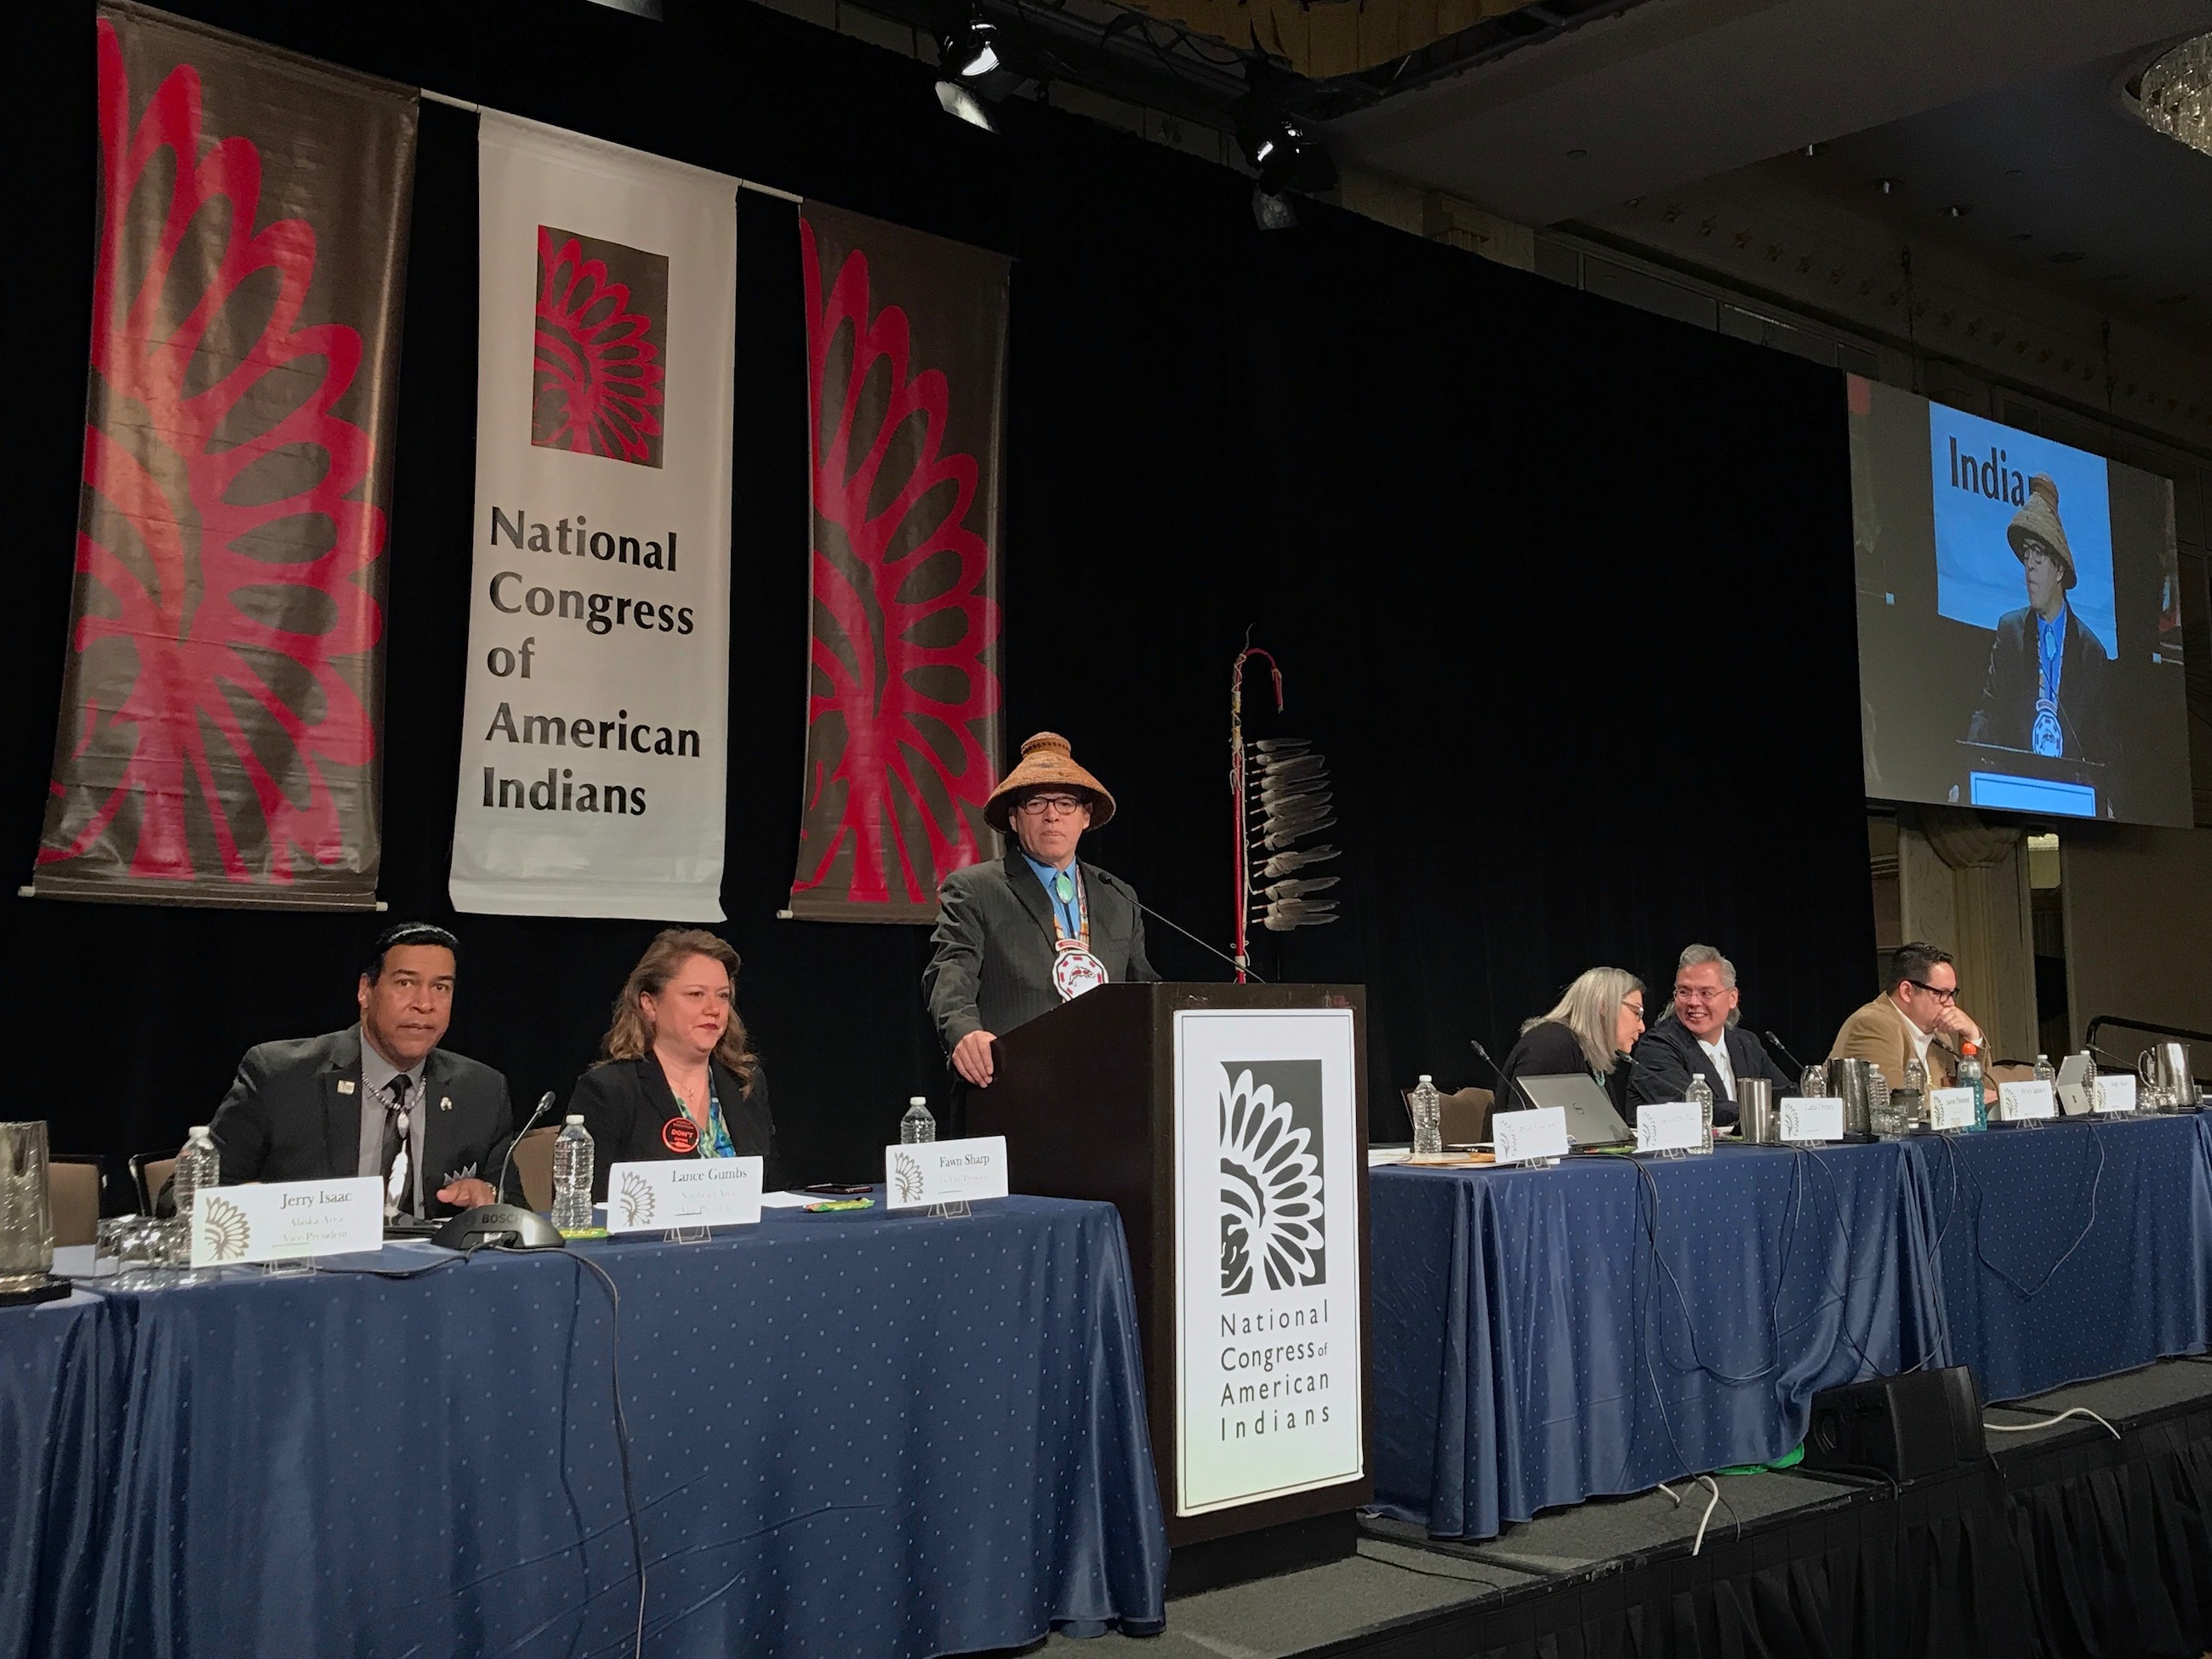 Senate Committee on Indian Affairs sets hearing on Trump administration 'priorities'